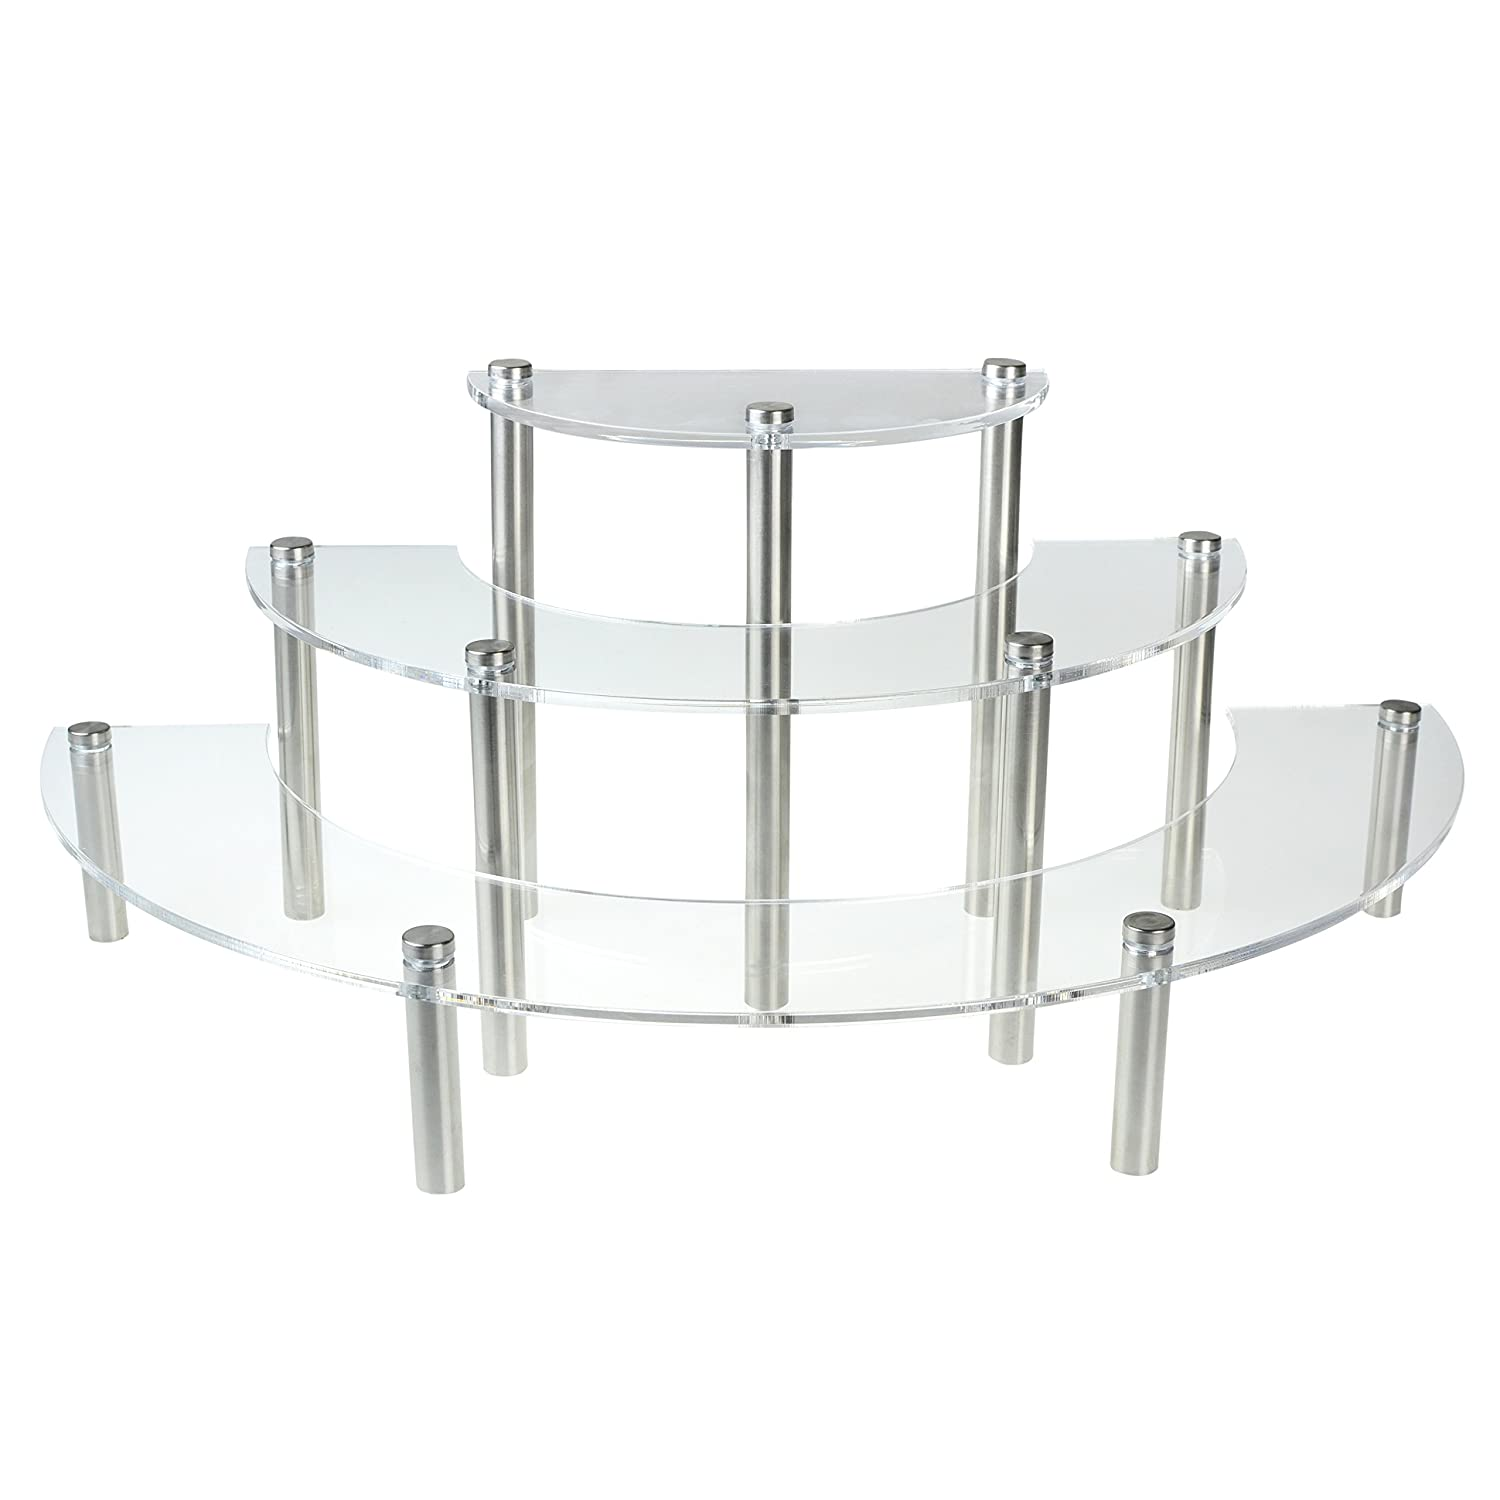 Amazon.com: Clear Acrylic 3 Tier Half Moon Shelf Unit, Table Top Retail  Display Riser, Spice Jar Rack: Home U0026 Kitchen